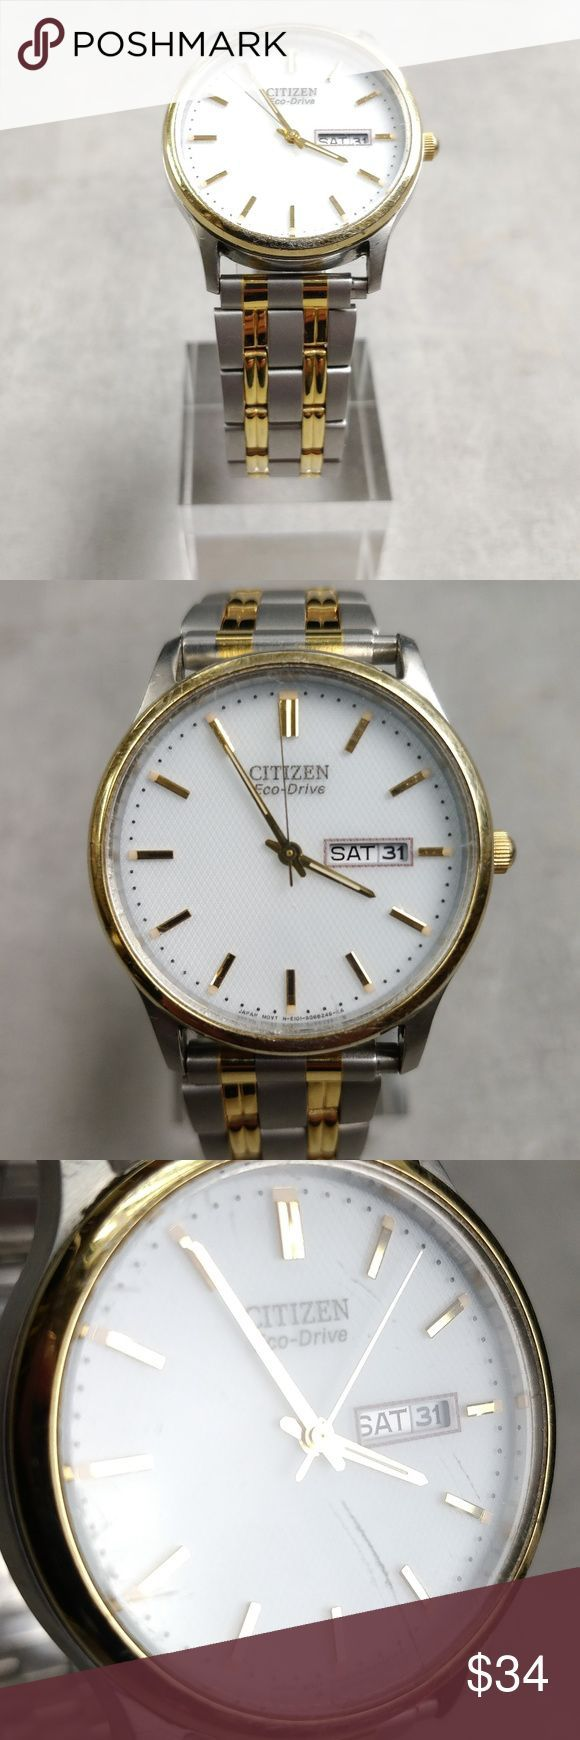 Citizen E101S058031 EcoDrive Men39s Watch H130 Band is fine and has n Citizen E101S058031 EcoDrive Mens Watch H130 Band is fine and has n